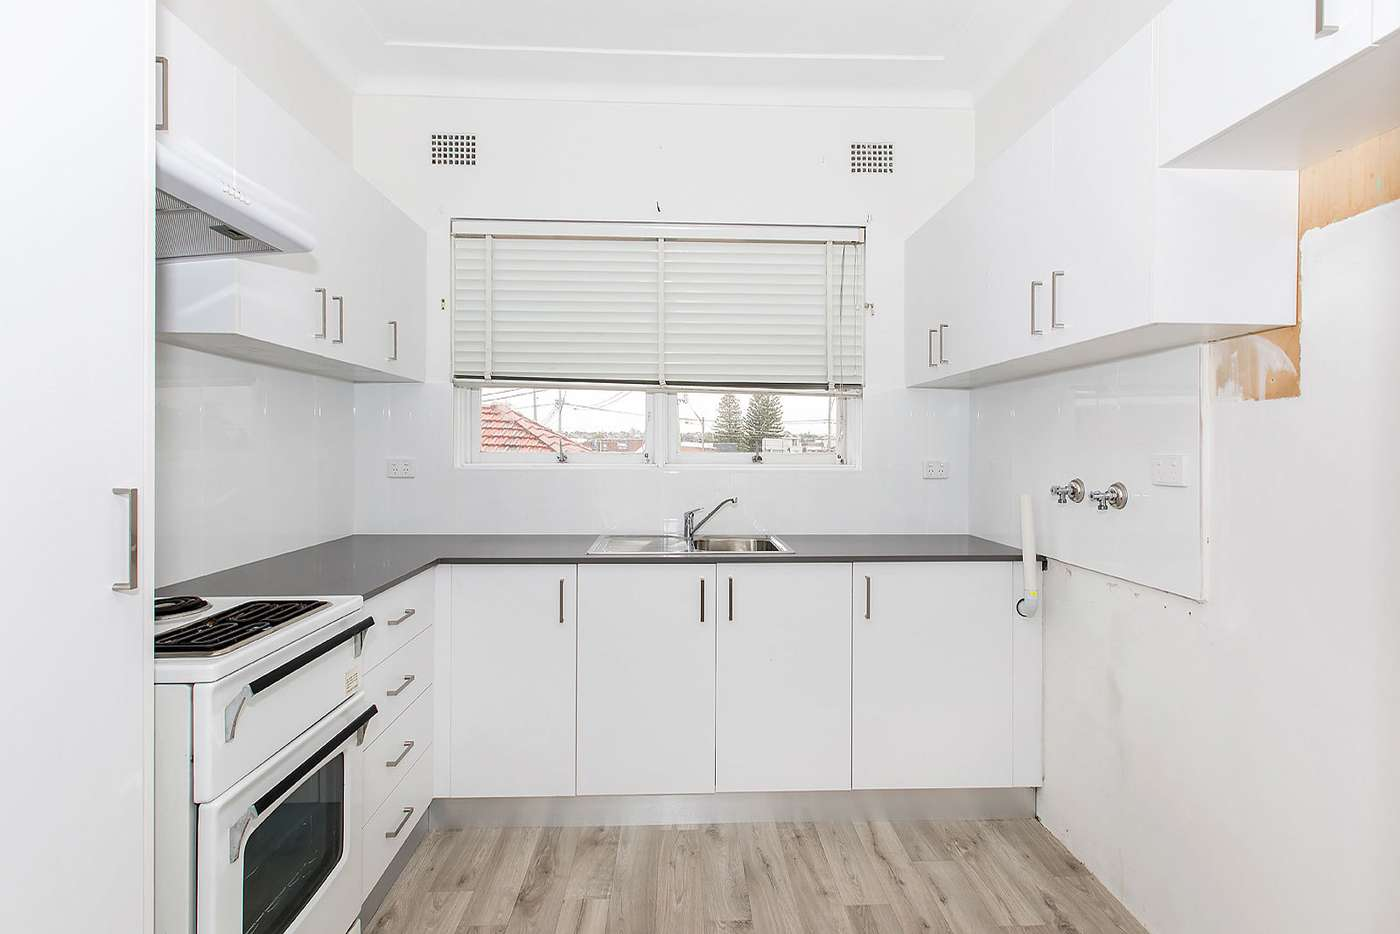 Main view of Homely apartment listing, 6/167 Bestic Street, Brighton-le-sands NSW 2216